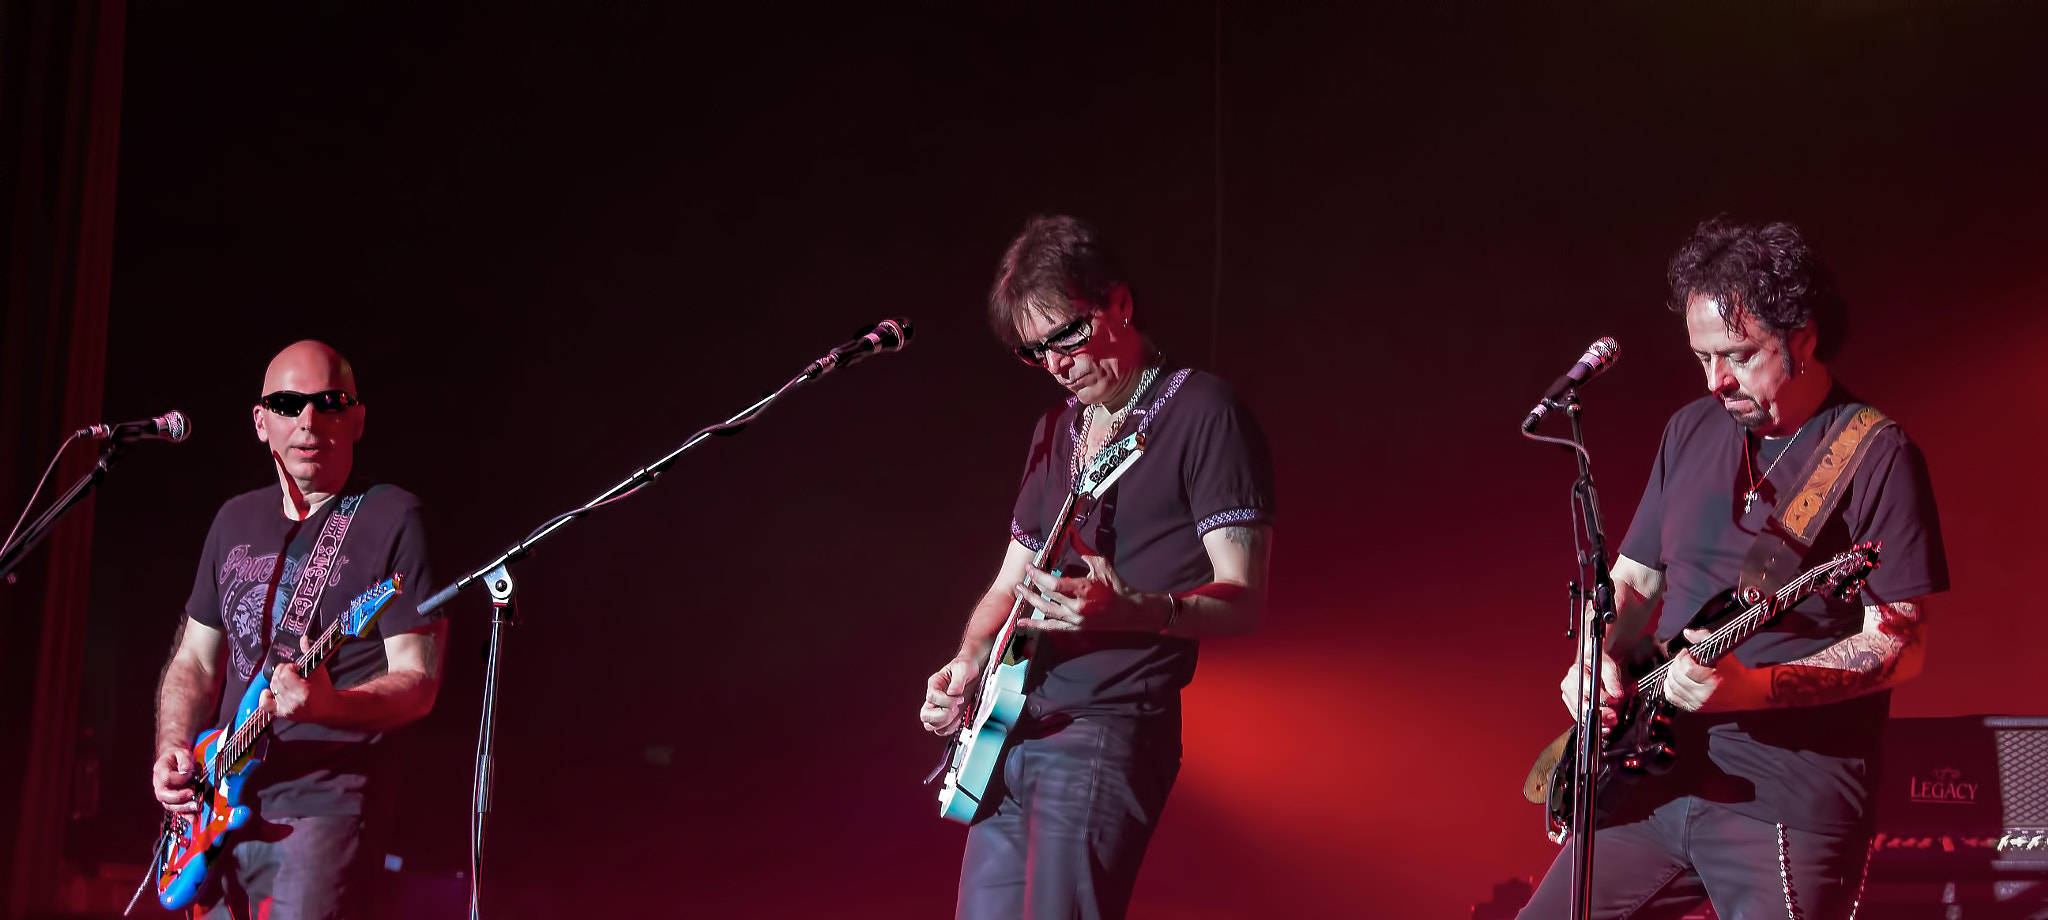 Photograph G3 LIve in Auckla by Bong Andres on 500px